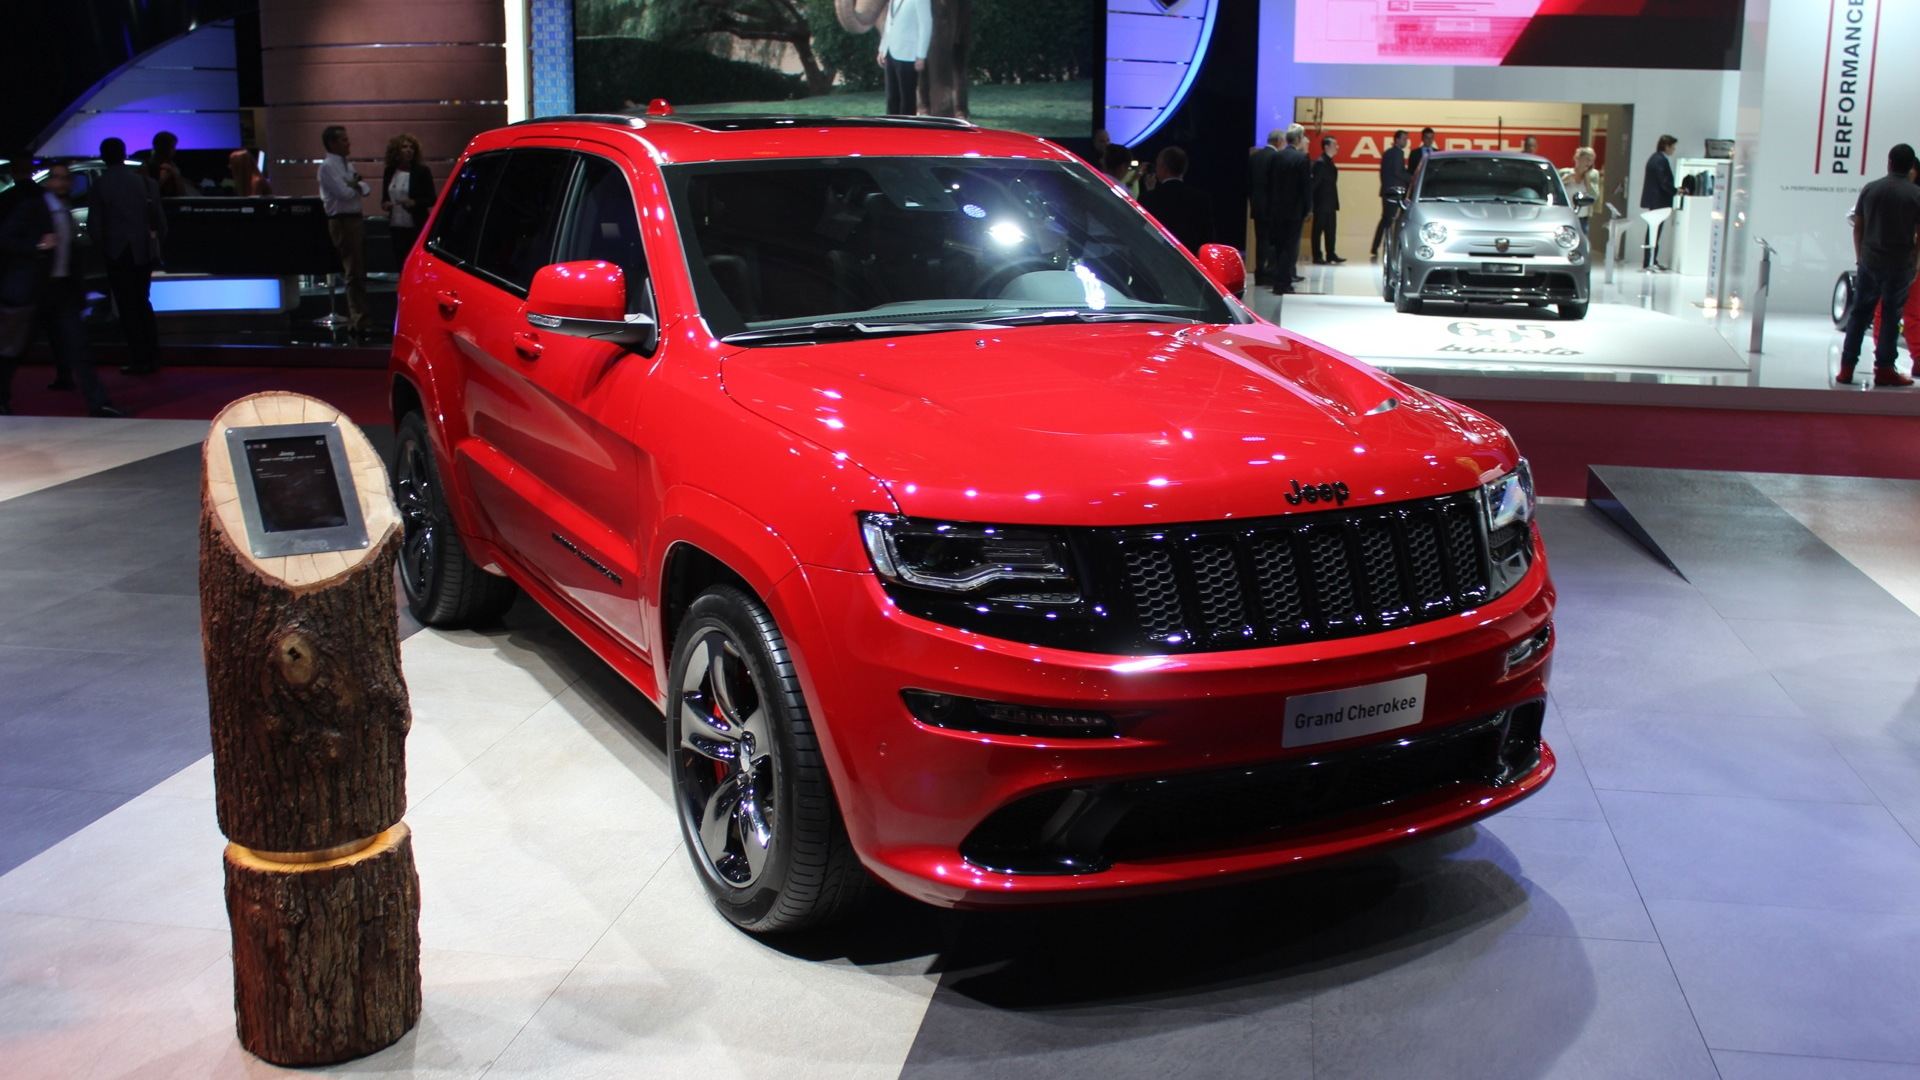 2015 Jeep Grand Cherokee SRT Red Vapor Limited Edition (Euro-spec)  -  2014 Paris Auto Show